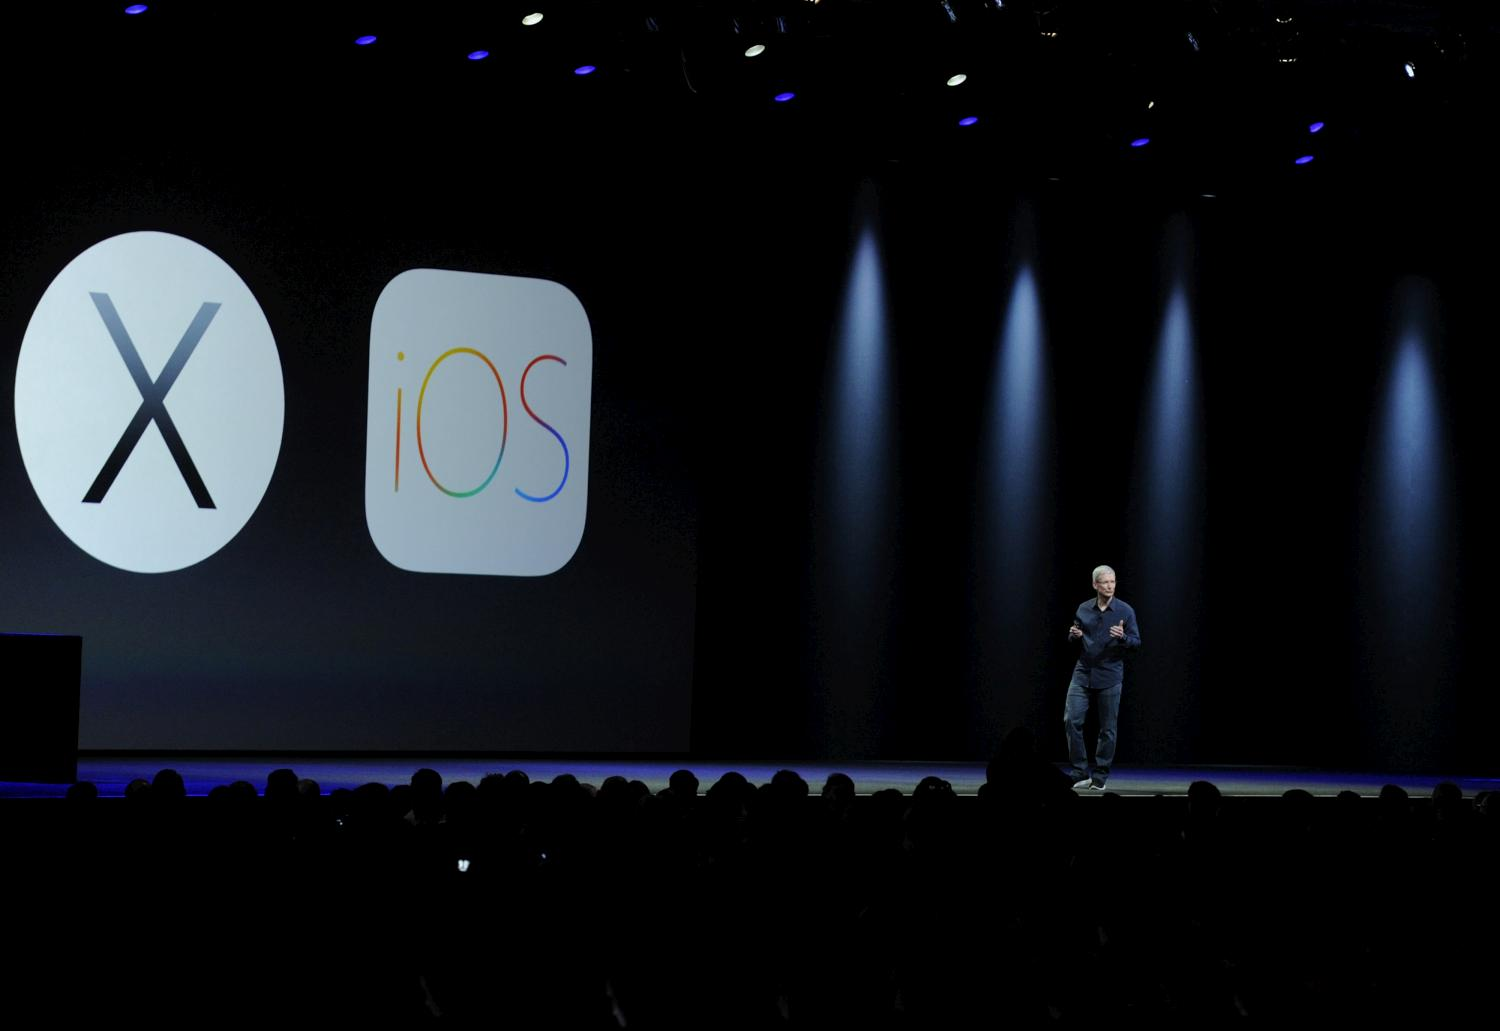 Apple CEO Tim Cook delivers the keynote address during the Apple World Wide Developers Conference (WWDC) in San Francisco on Monday, June 2, 2014.